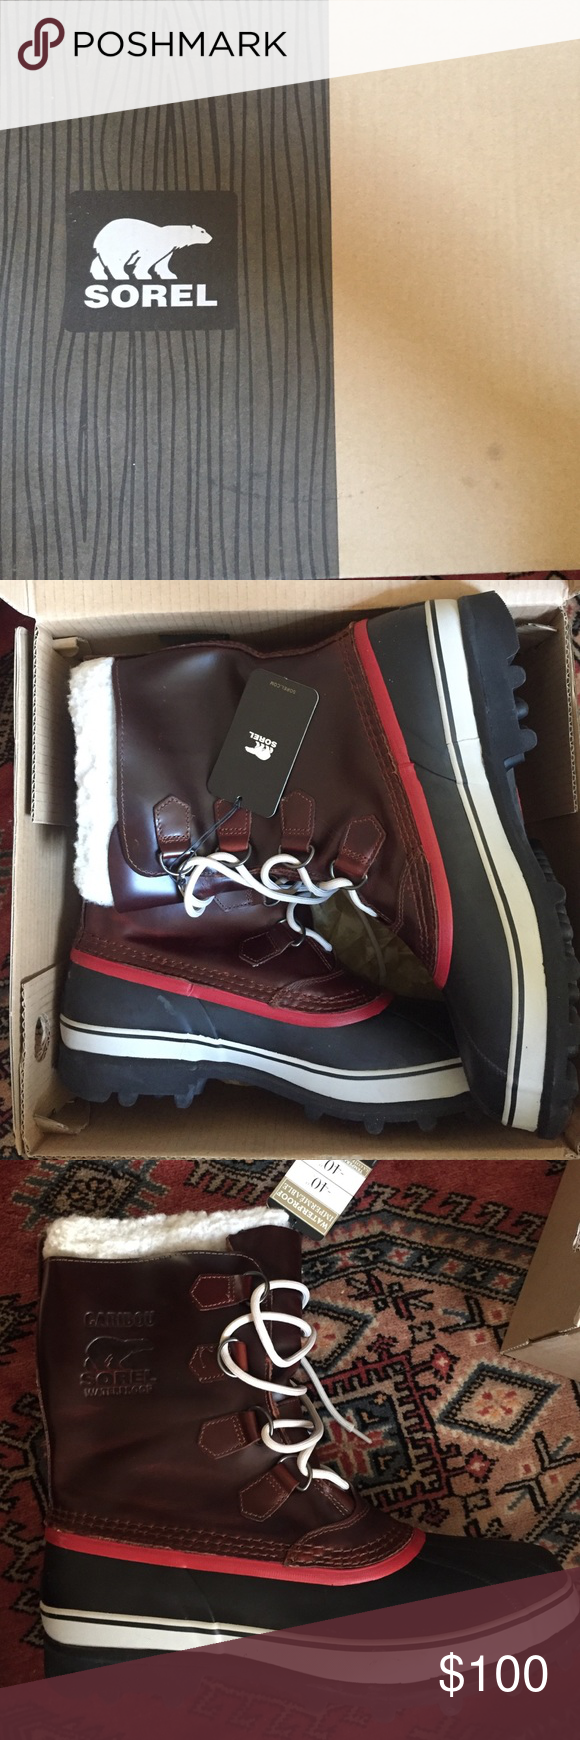 Brand New! Men's Sorel Boots Size 11.5 Brown Caribou wool waterproof snow boots Sorel Shoes Rain & Snow Boots